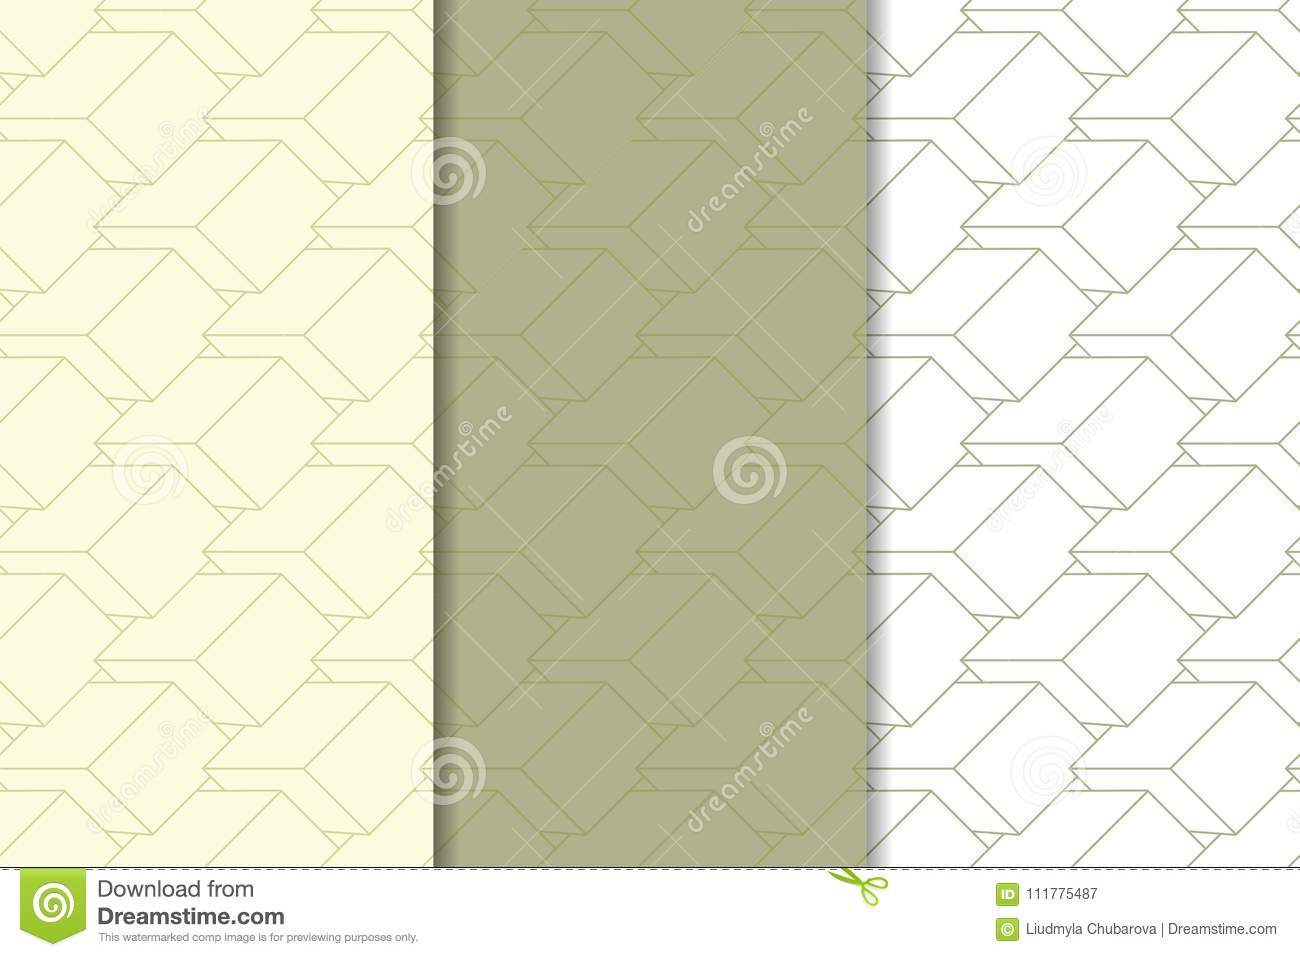 Olive green and white geometric set of seamless patterns